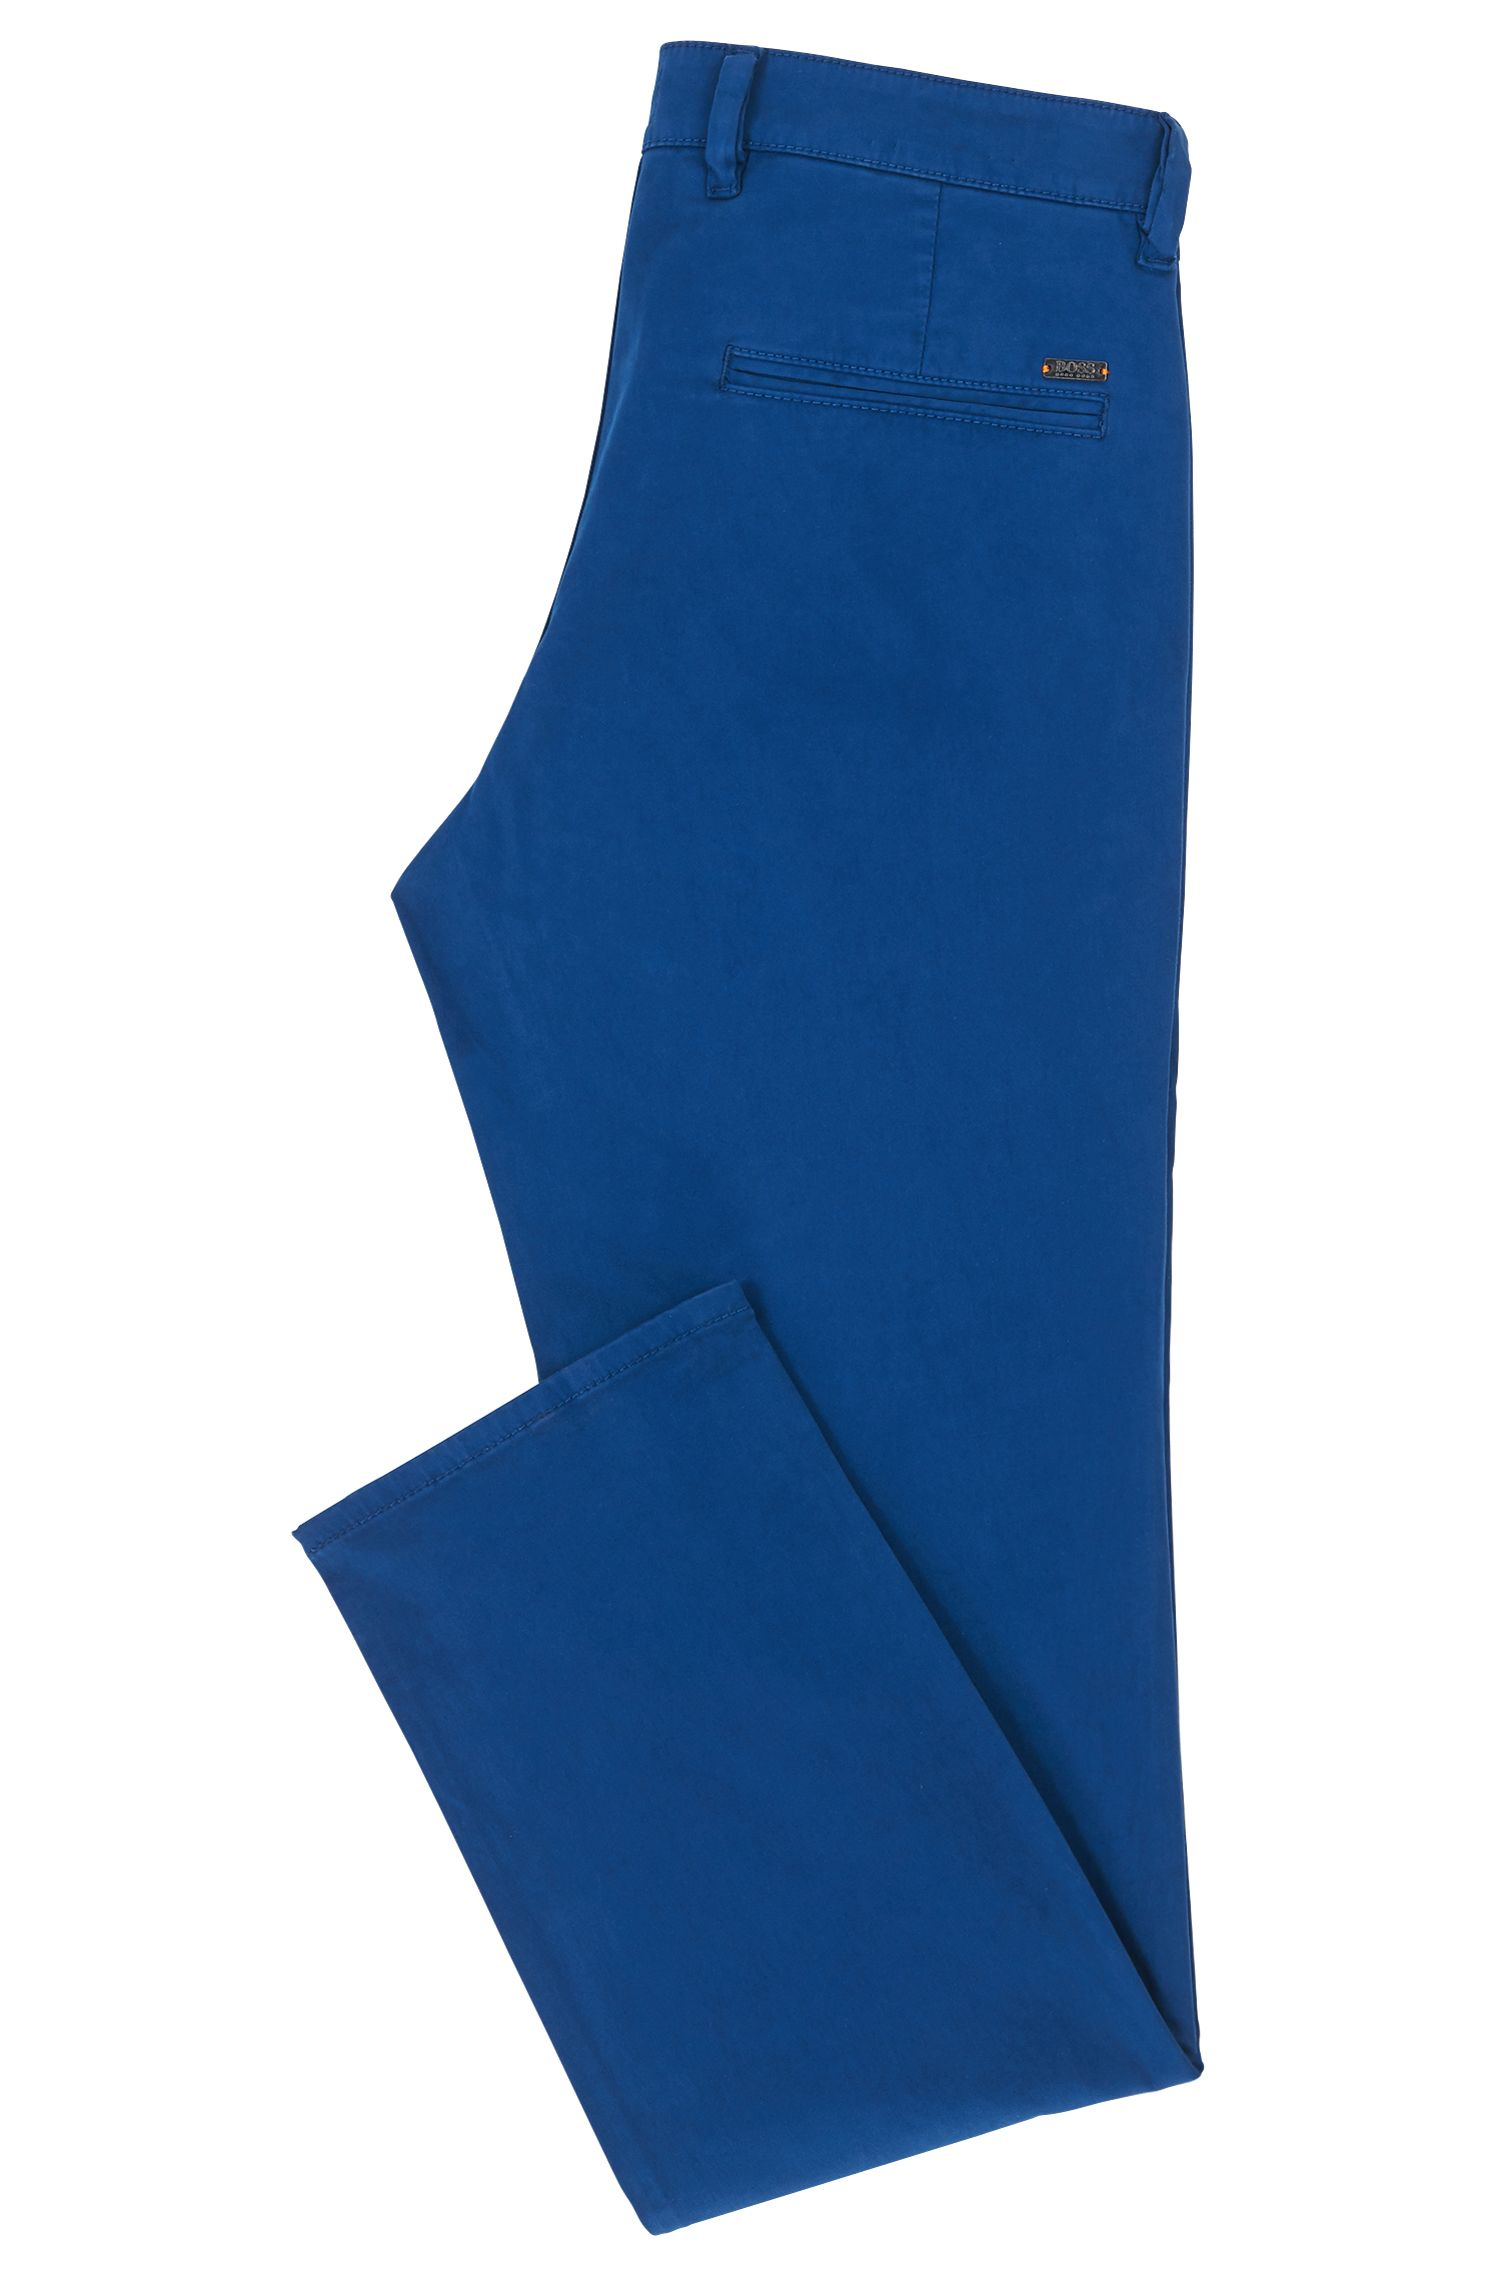 Regular-Fit Casual-Chino aus angerauter Stretch-Baumwolle, Blau